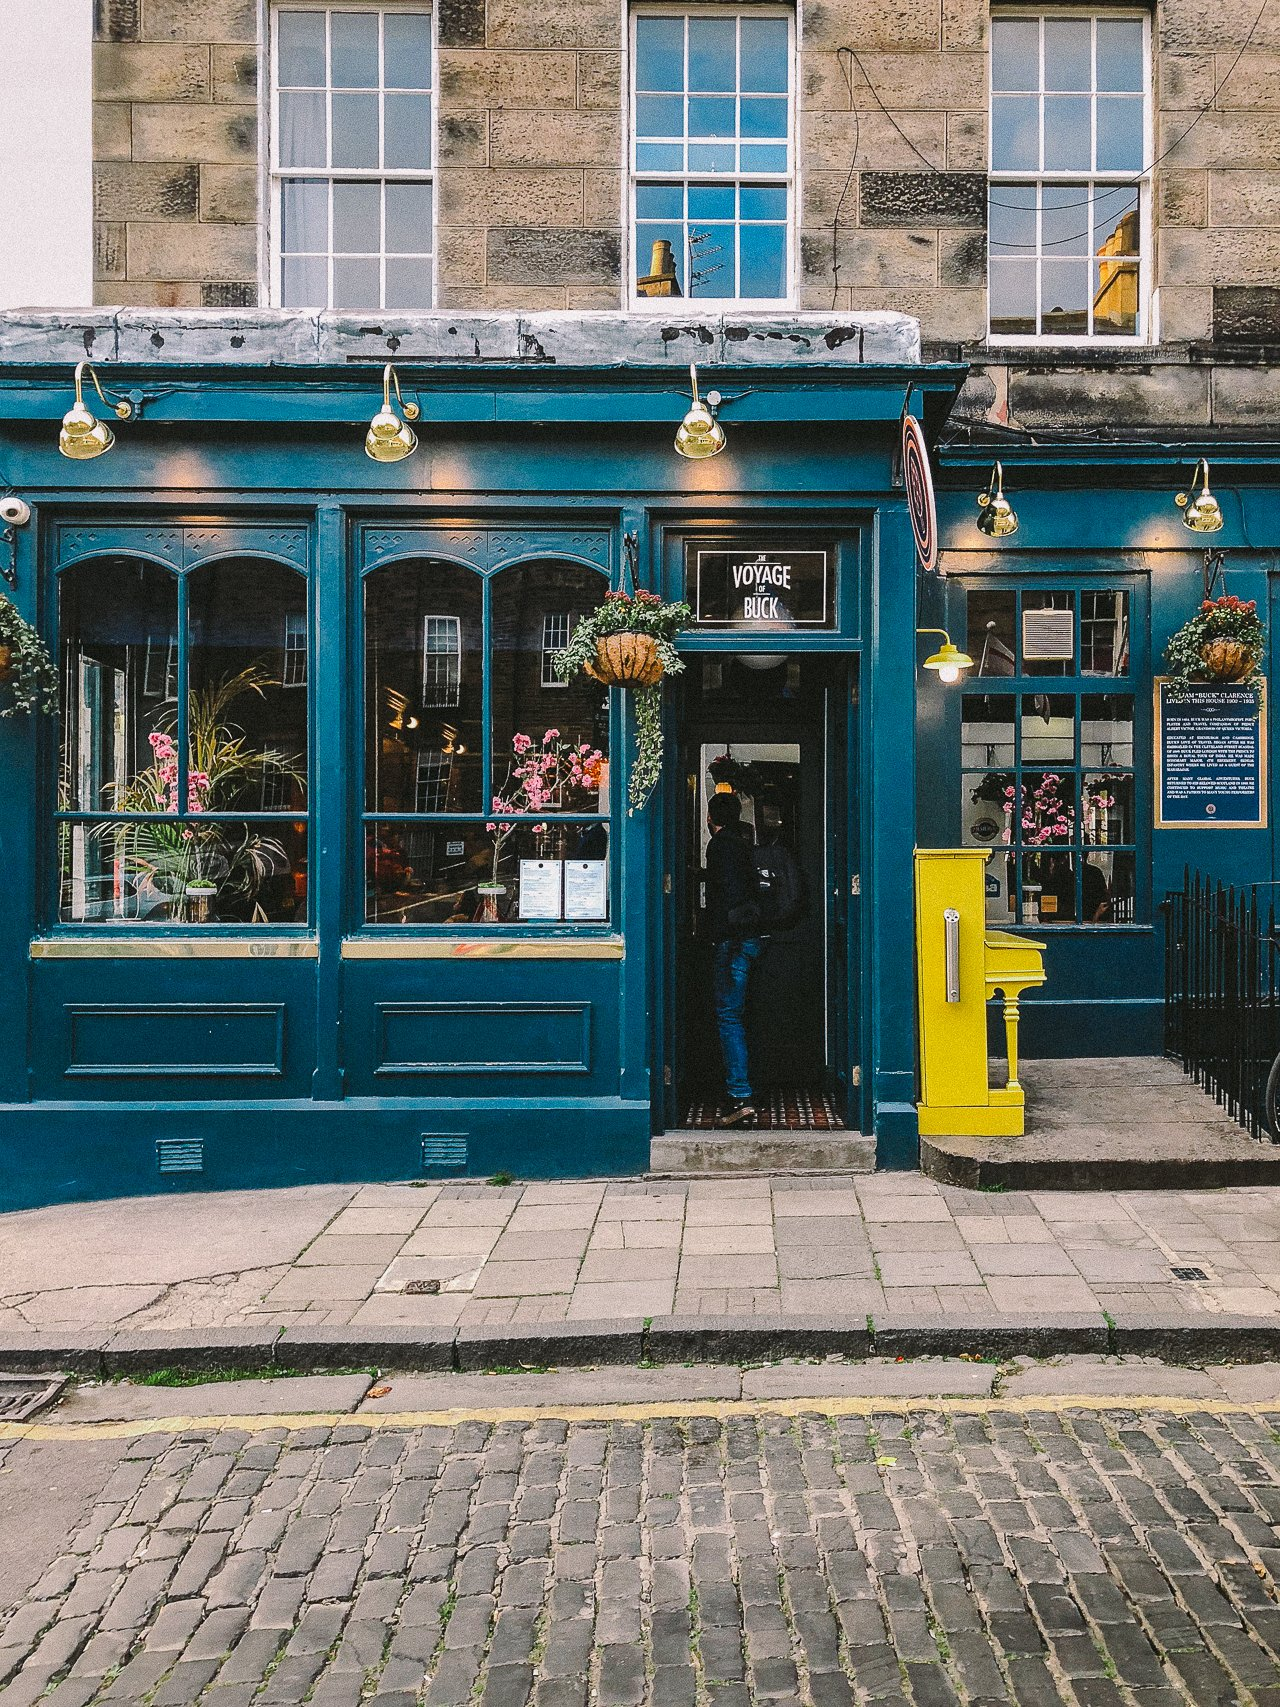 Voyage of the Buck | Edinburgh Travel Guide by HonestlyYUM